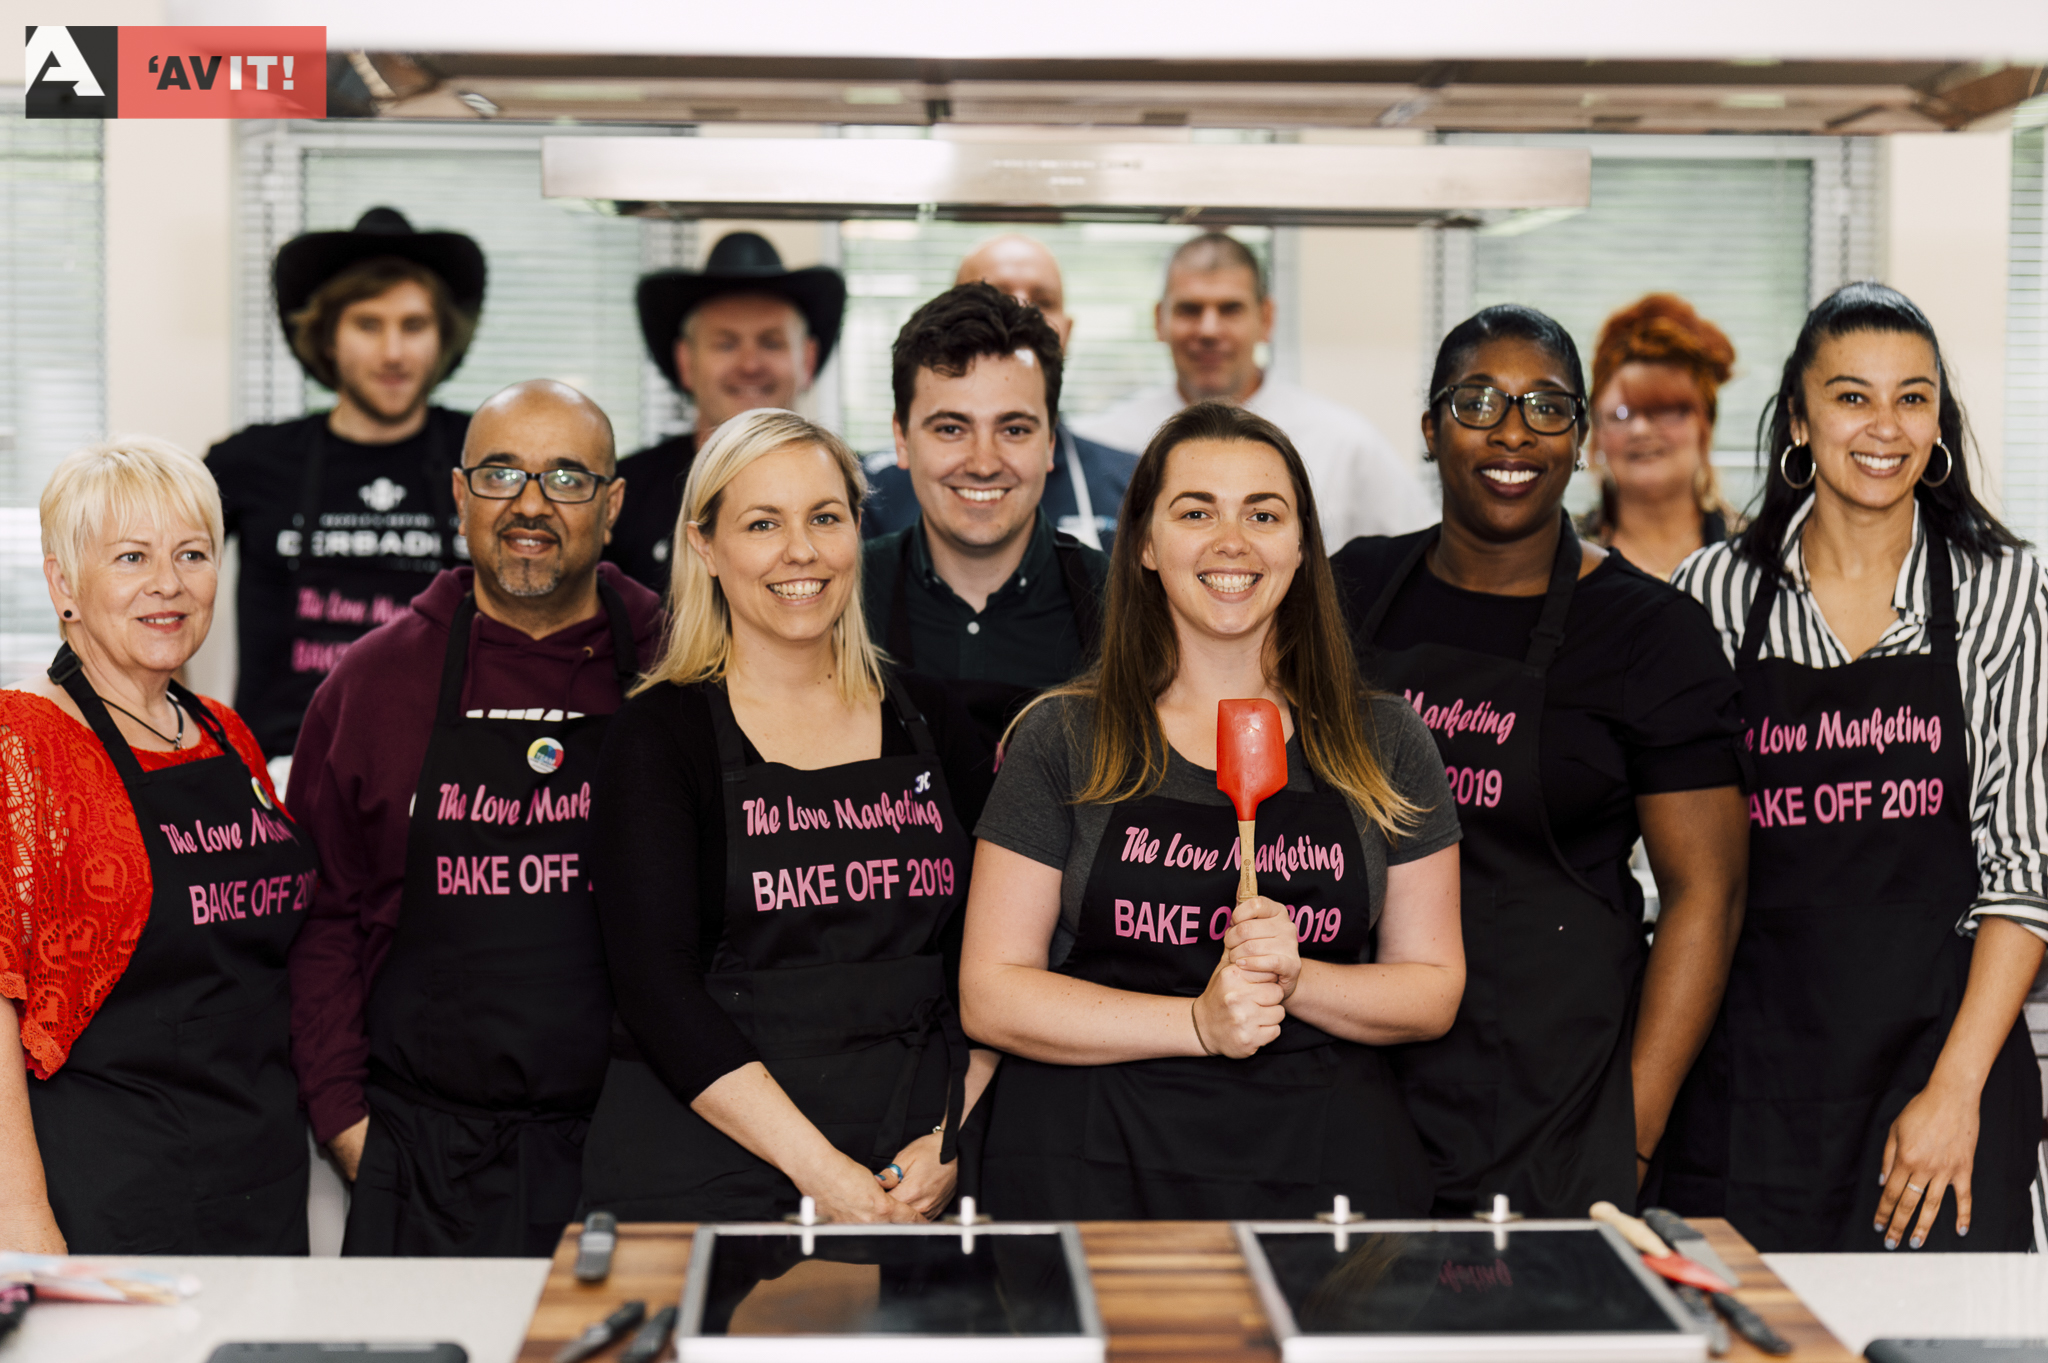 Derby Museums crowned 'Star Bakers' at Bake Off launch.